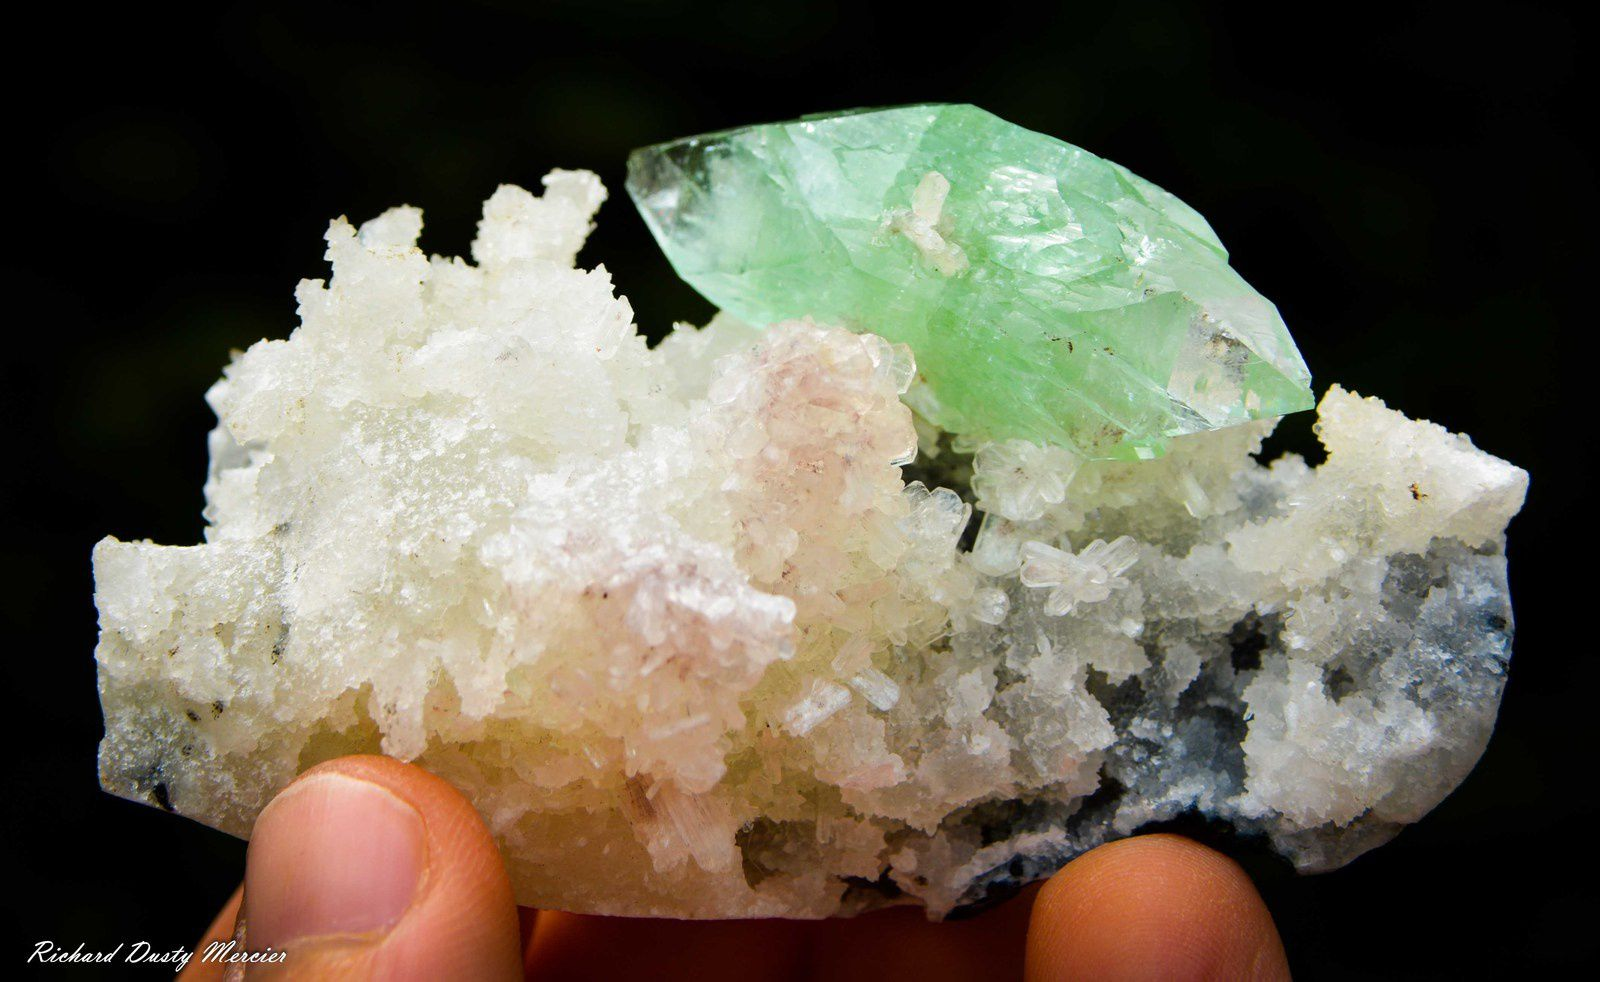 Bi terminated Green Apophyllite on Chalcedony (Calcédoine) from India